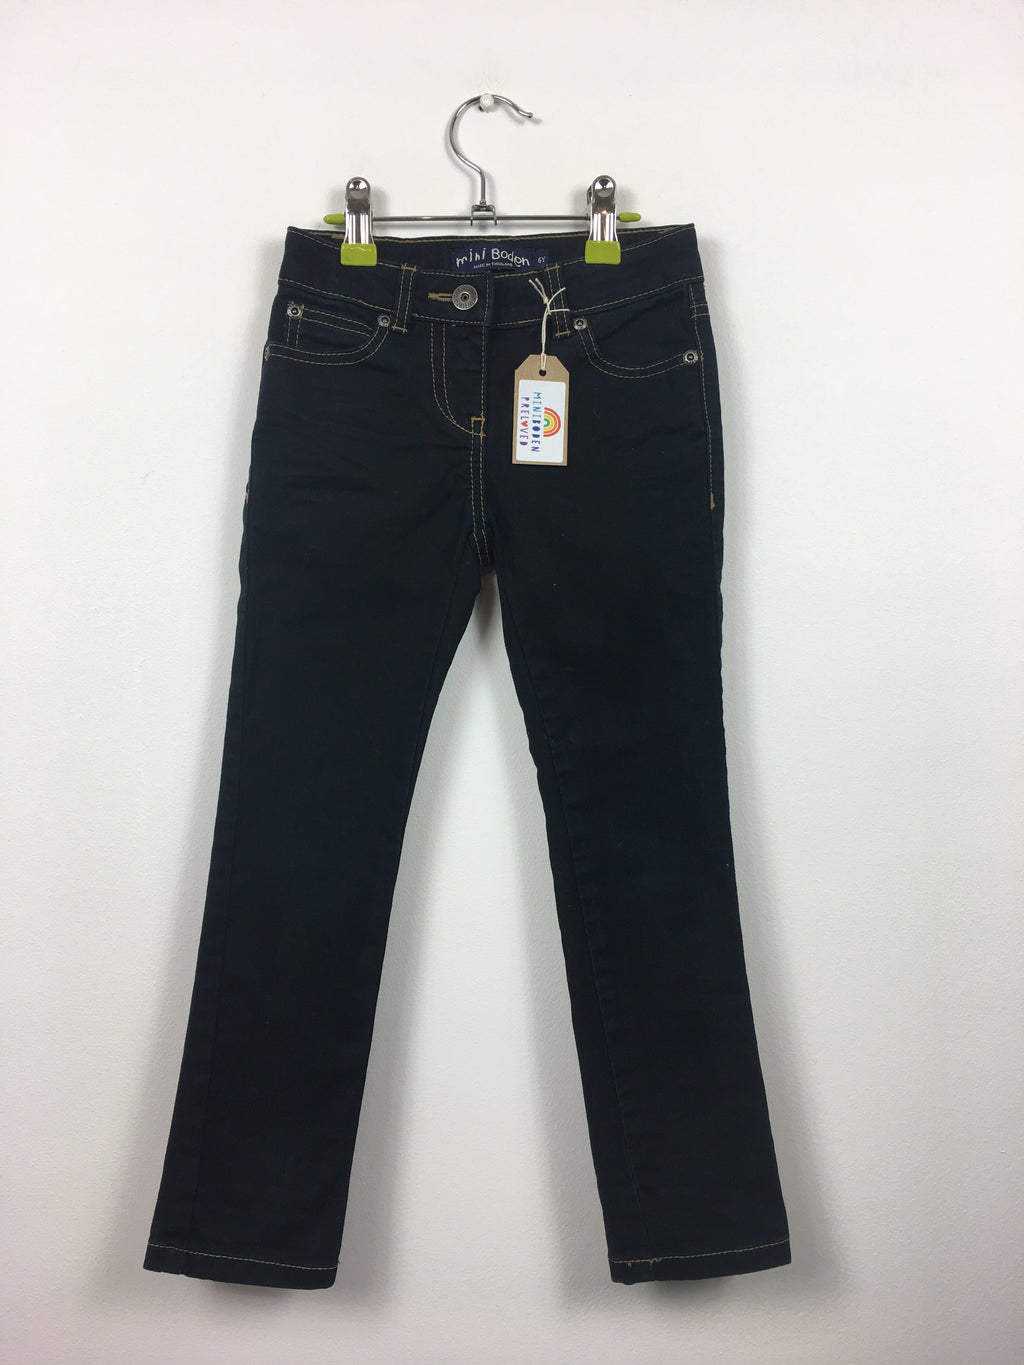 Black Slim-Fit Jeans (6 Years)